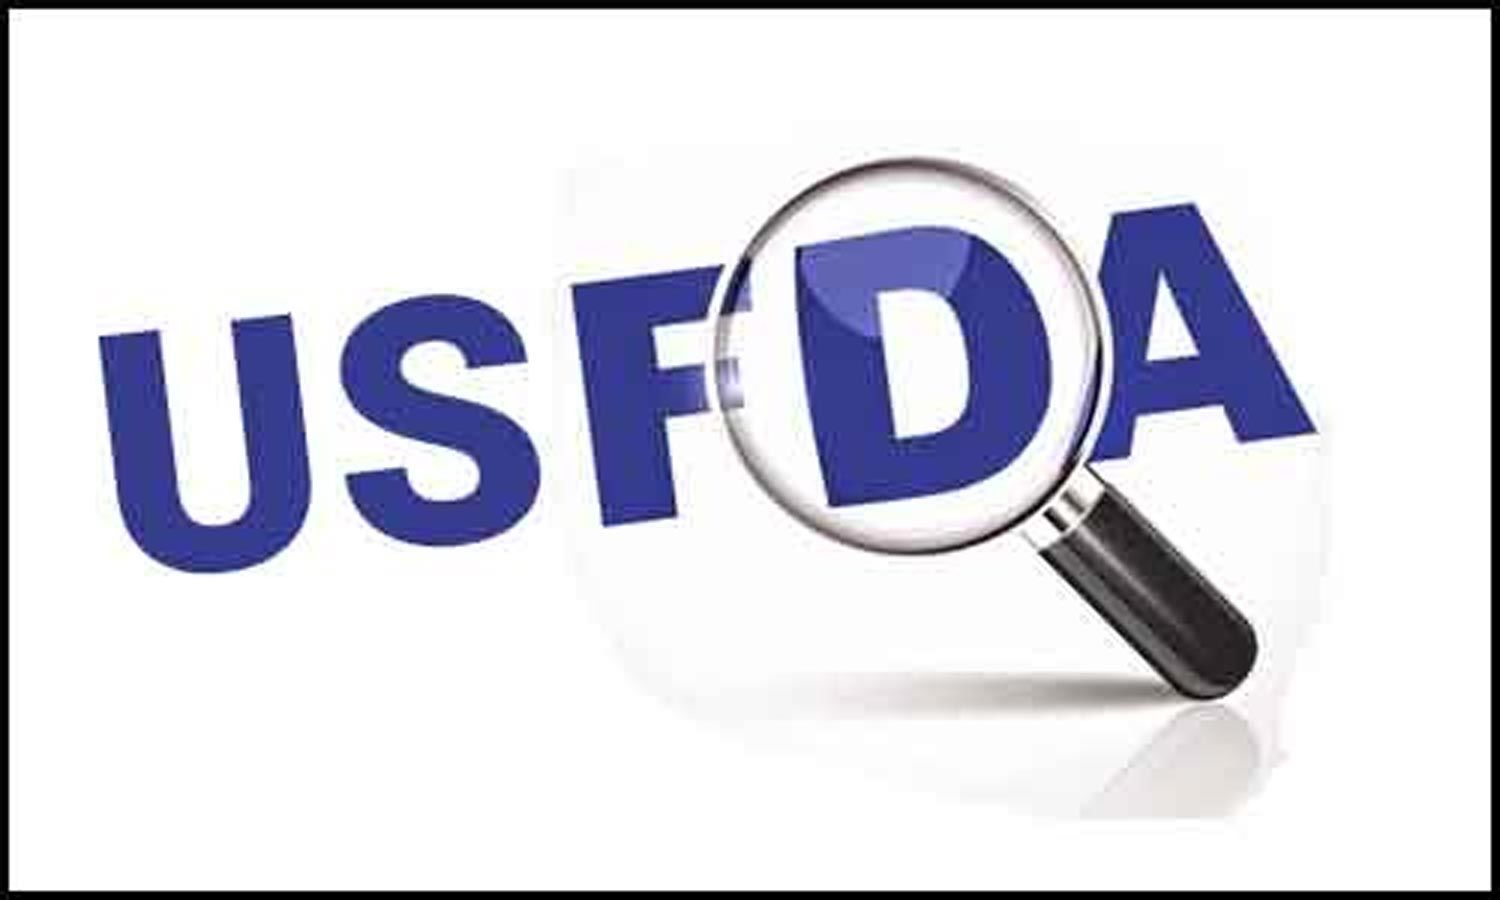 Zydus gets USFDA final approval for Erlotinib Tablets